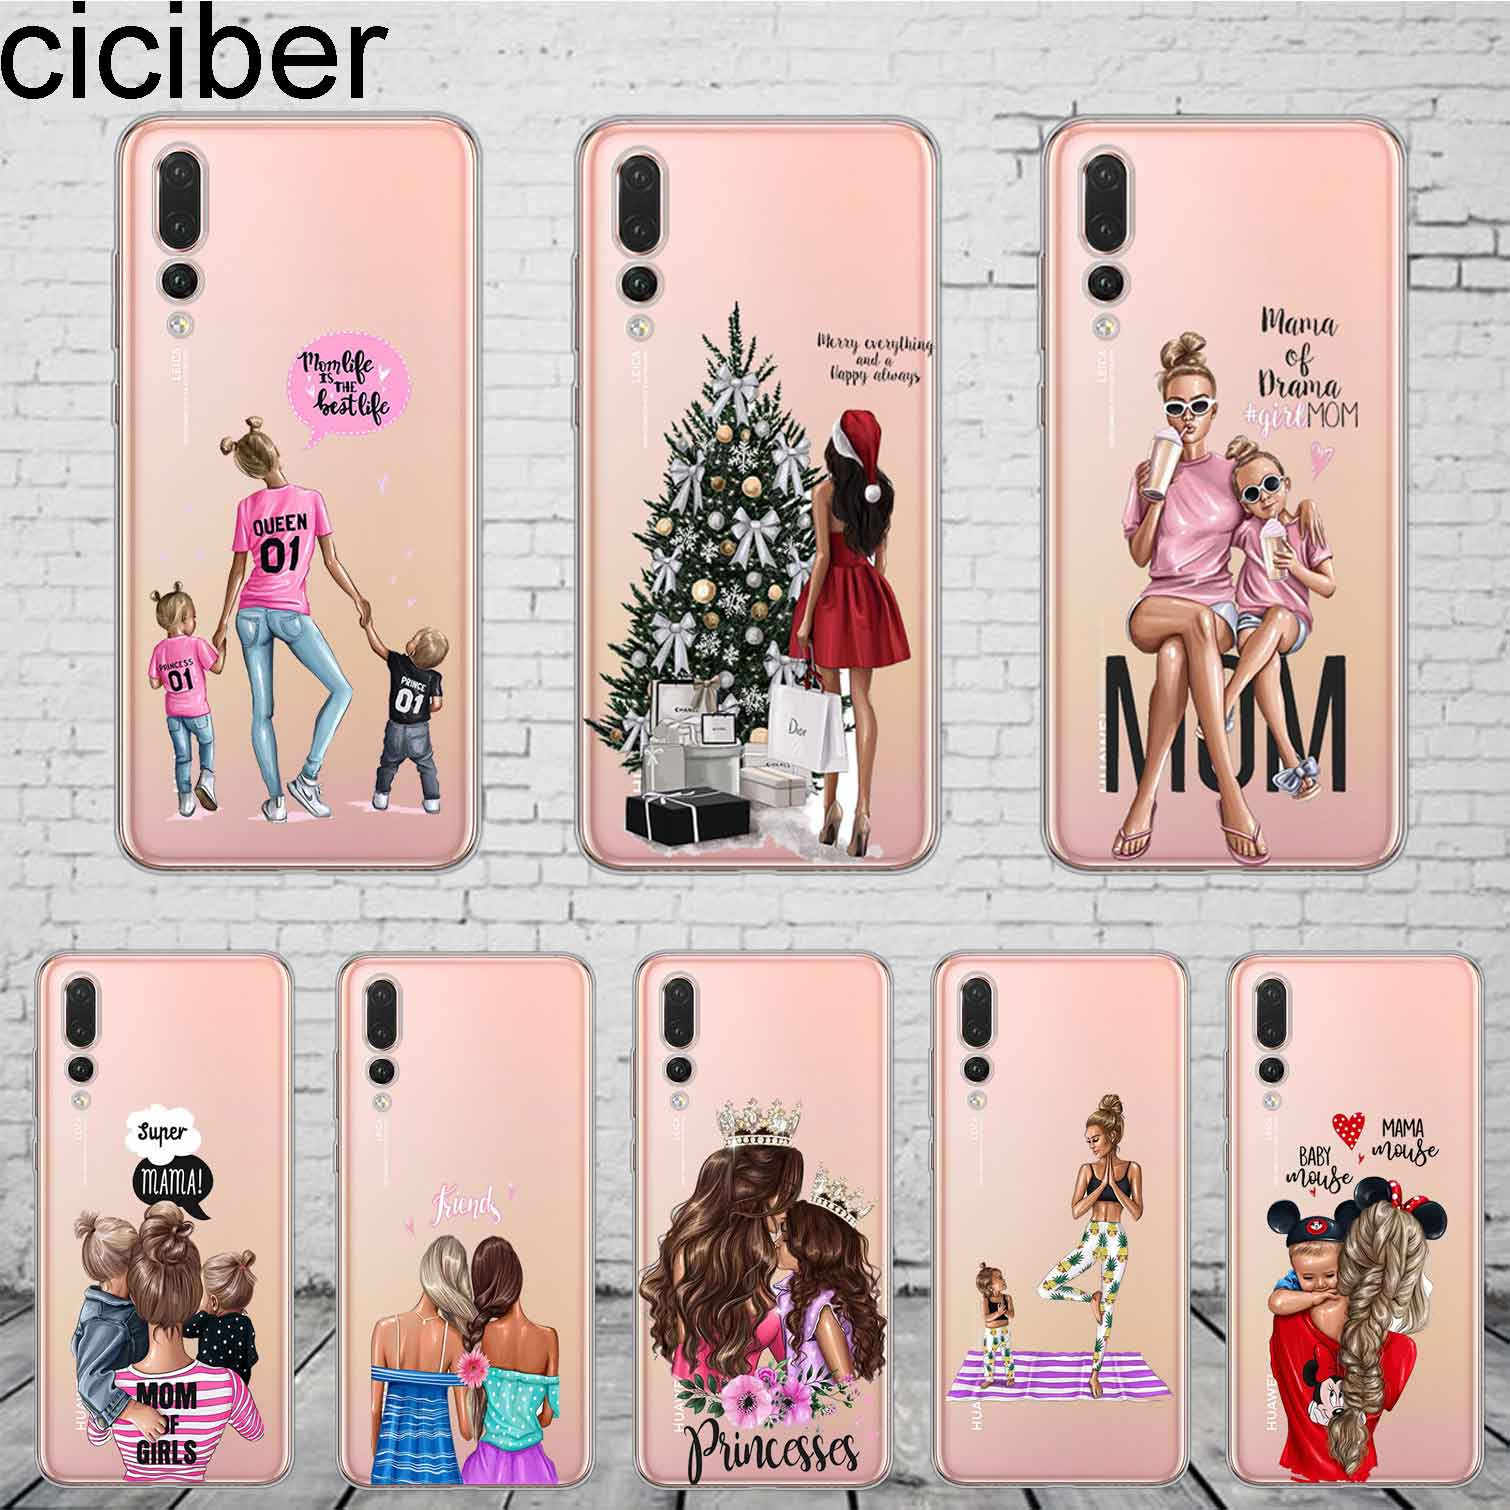 ciciber Woman Girl For Honor 10 9 8 Pro Lite X C Play 7A <font><b>Phone</b></font> <font><b>Case</b></font> For <font><b>Y</b></font> 9 7 6 <font><b>5</b></font> Prime Pro 2017 <font><b>2018</b></font> 2019 Coque Silicone TPU image